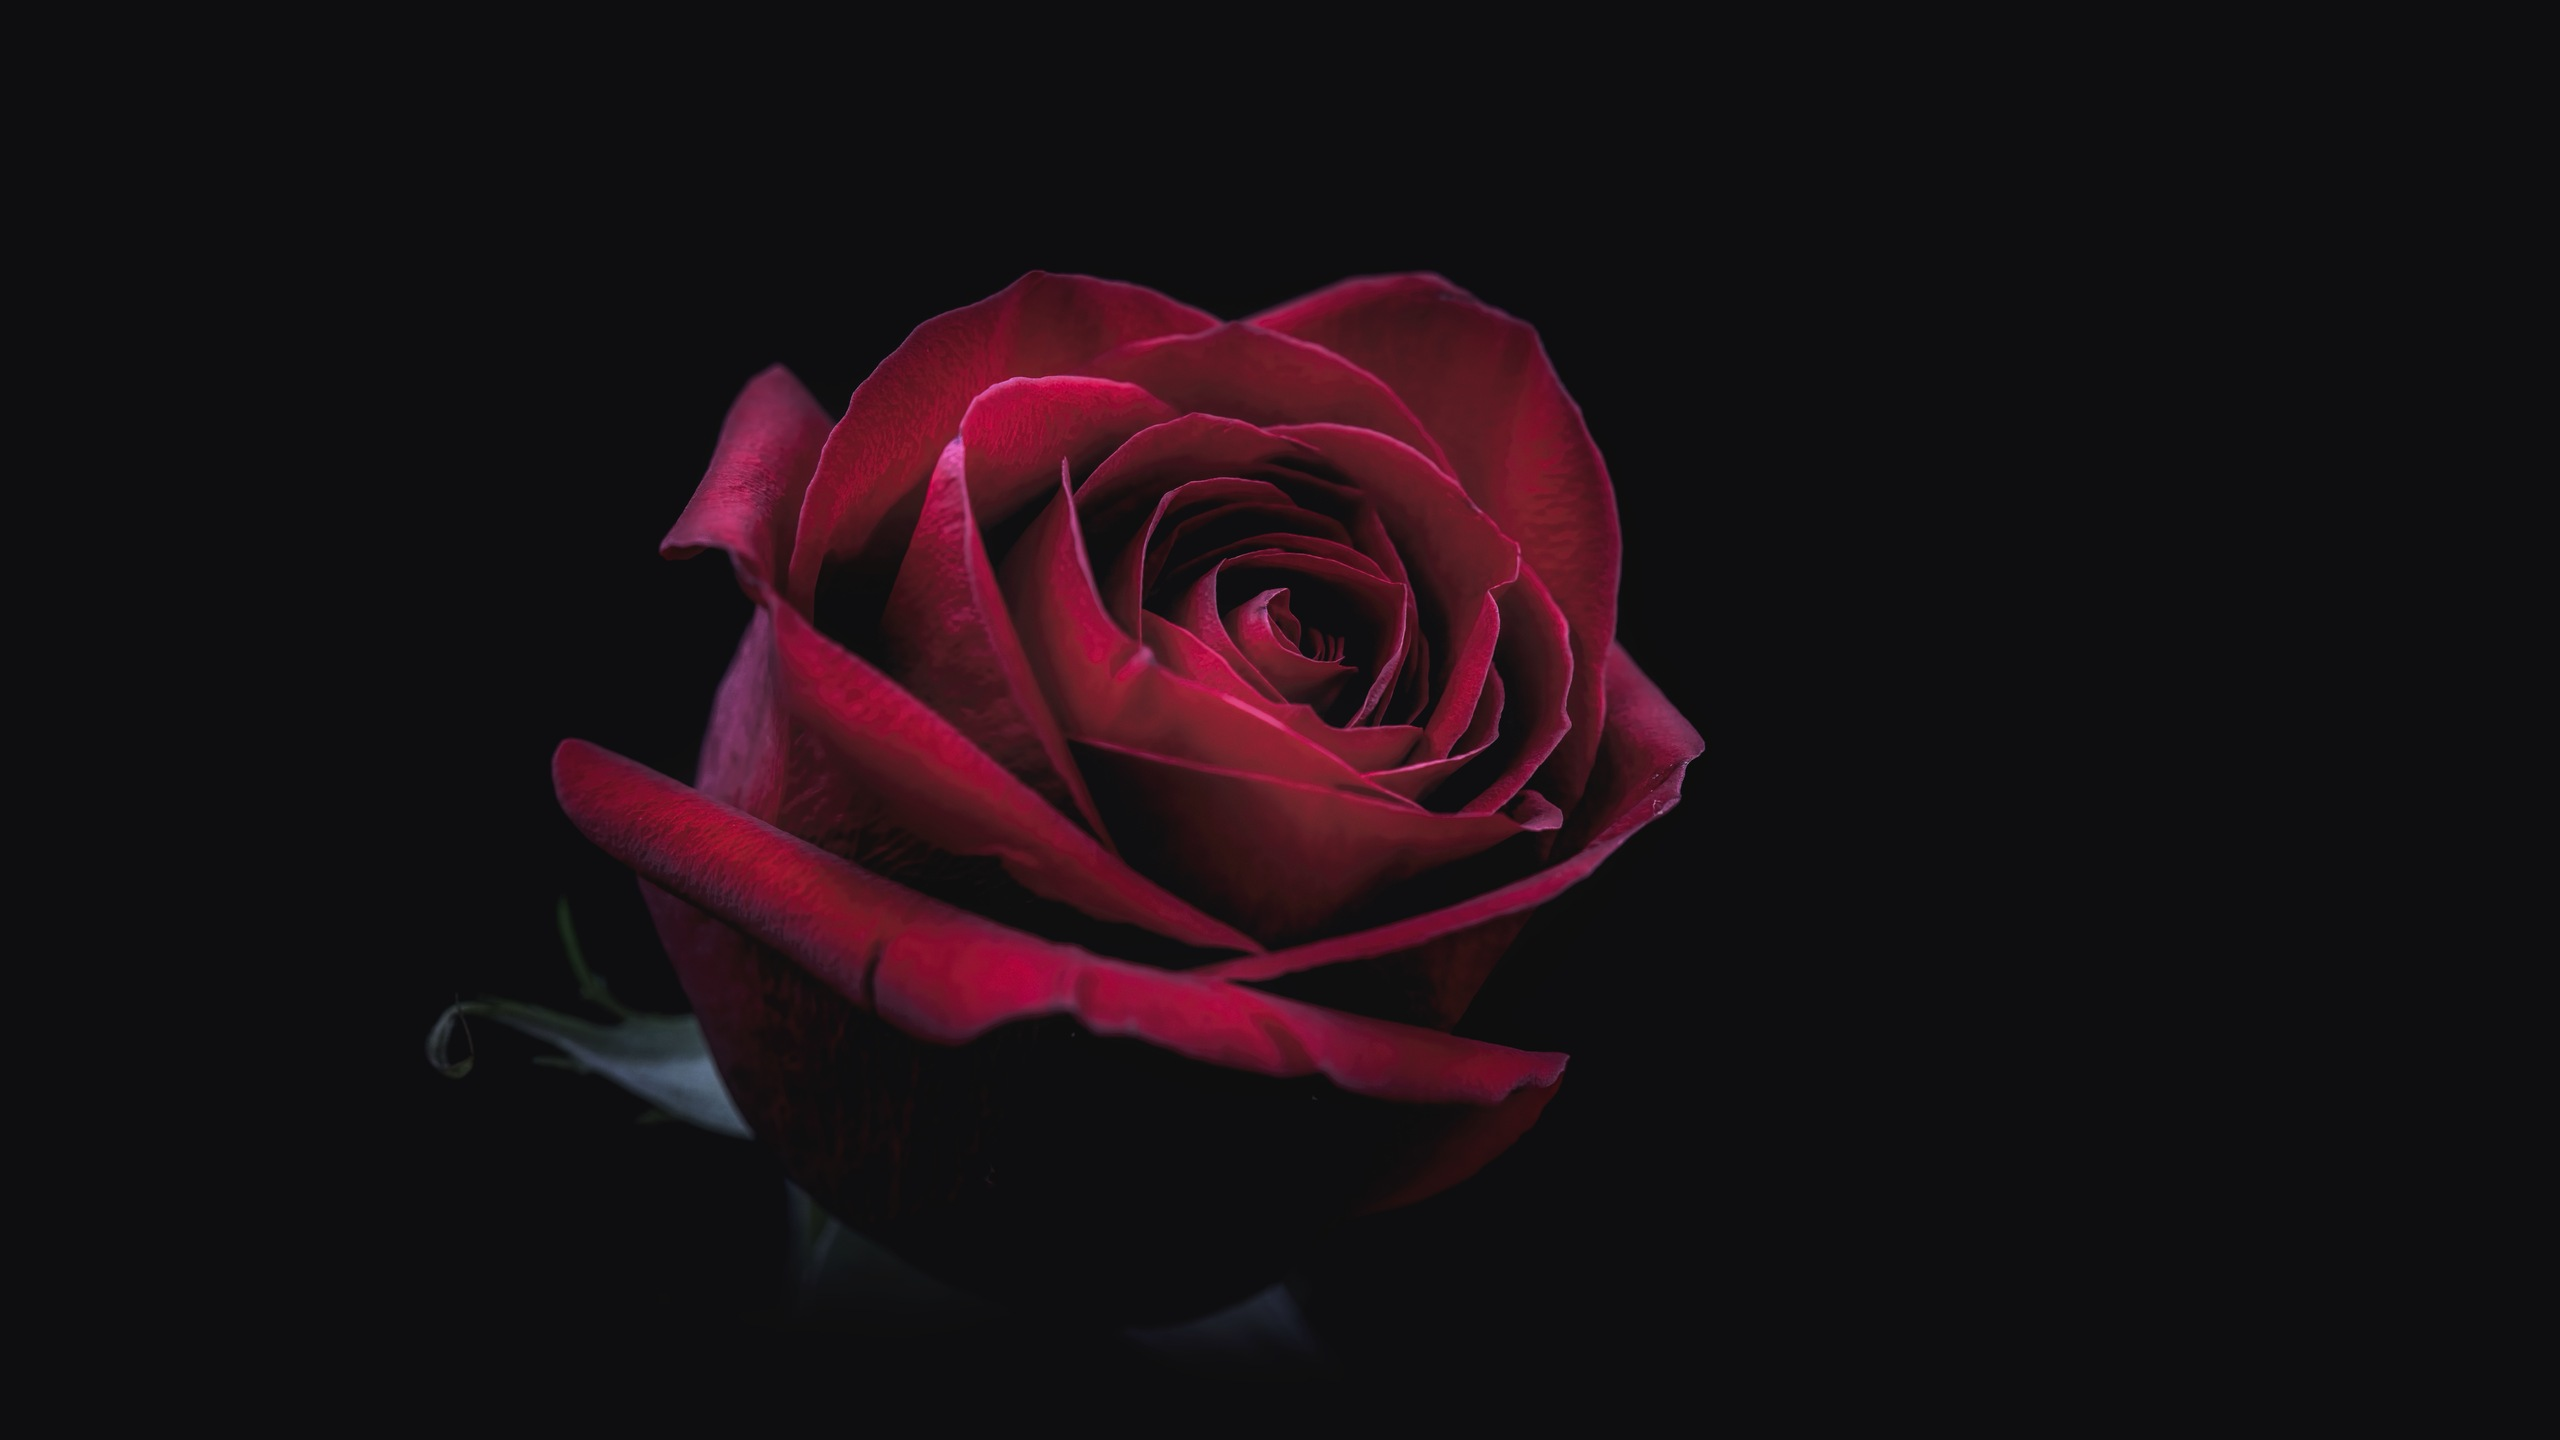 2560x1440 rose oled 8k 1440p resolution hd 4k wallpapers - Hd rose wallpaper for android mobile ...